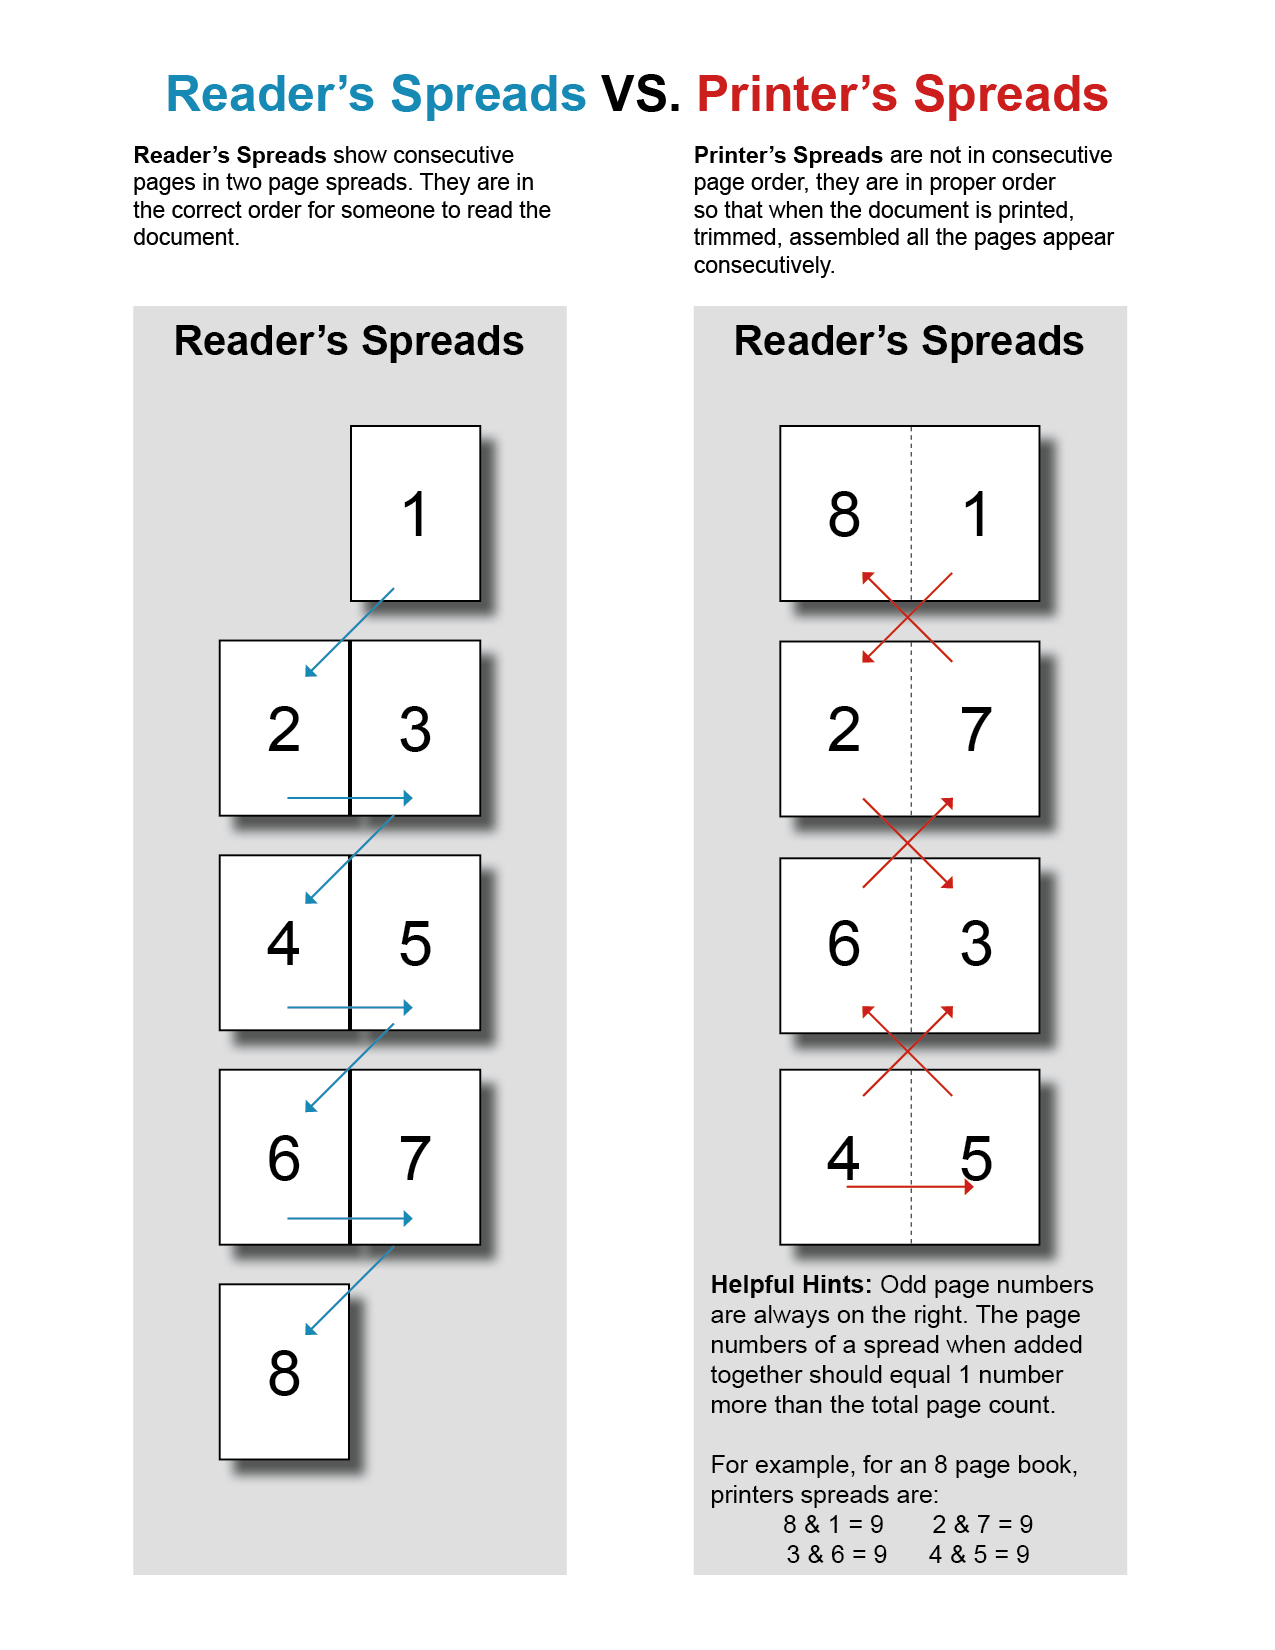 PRINTER'S SPREAD AND READER'S SPREAD IN BOOKLETS